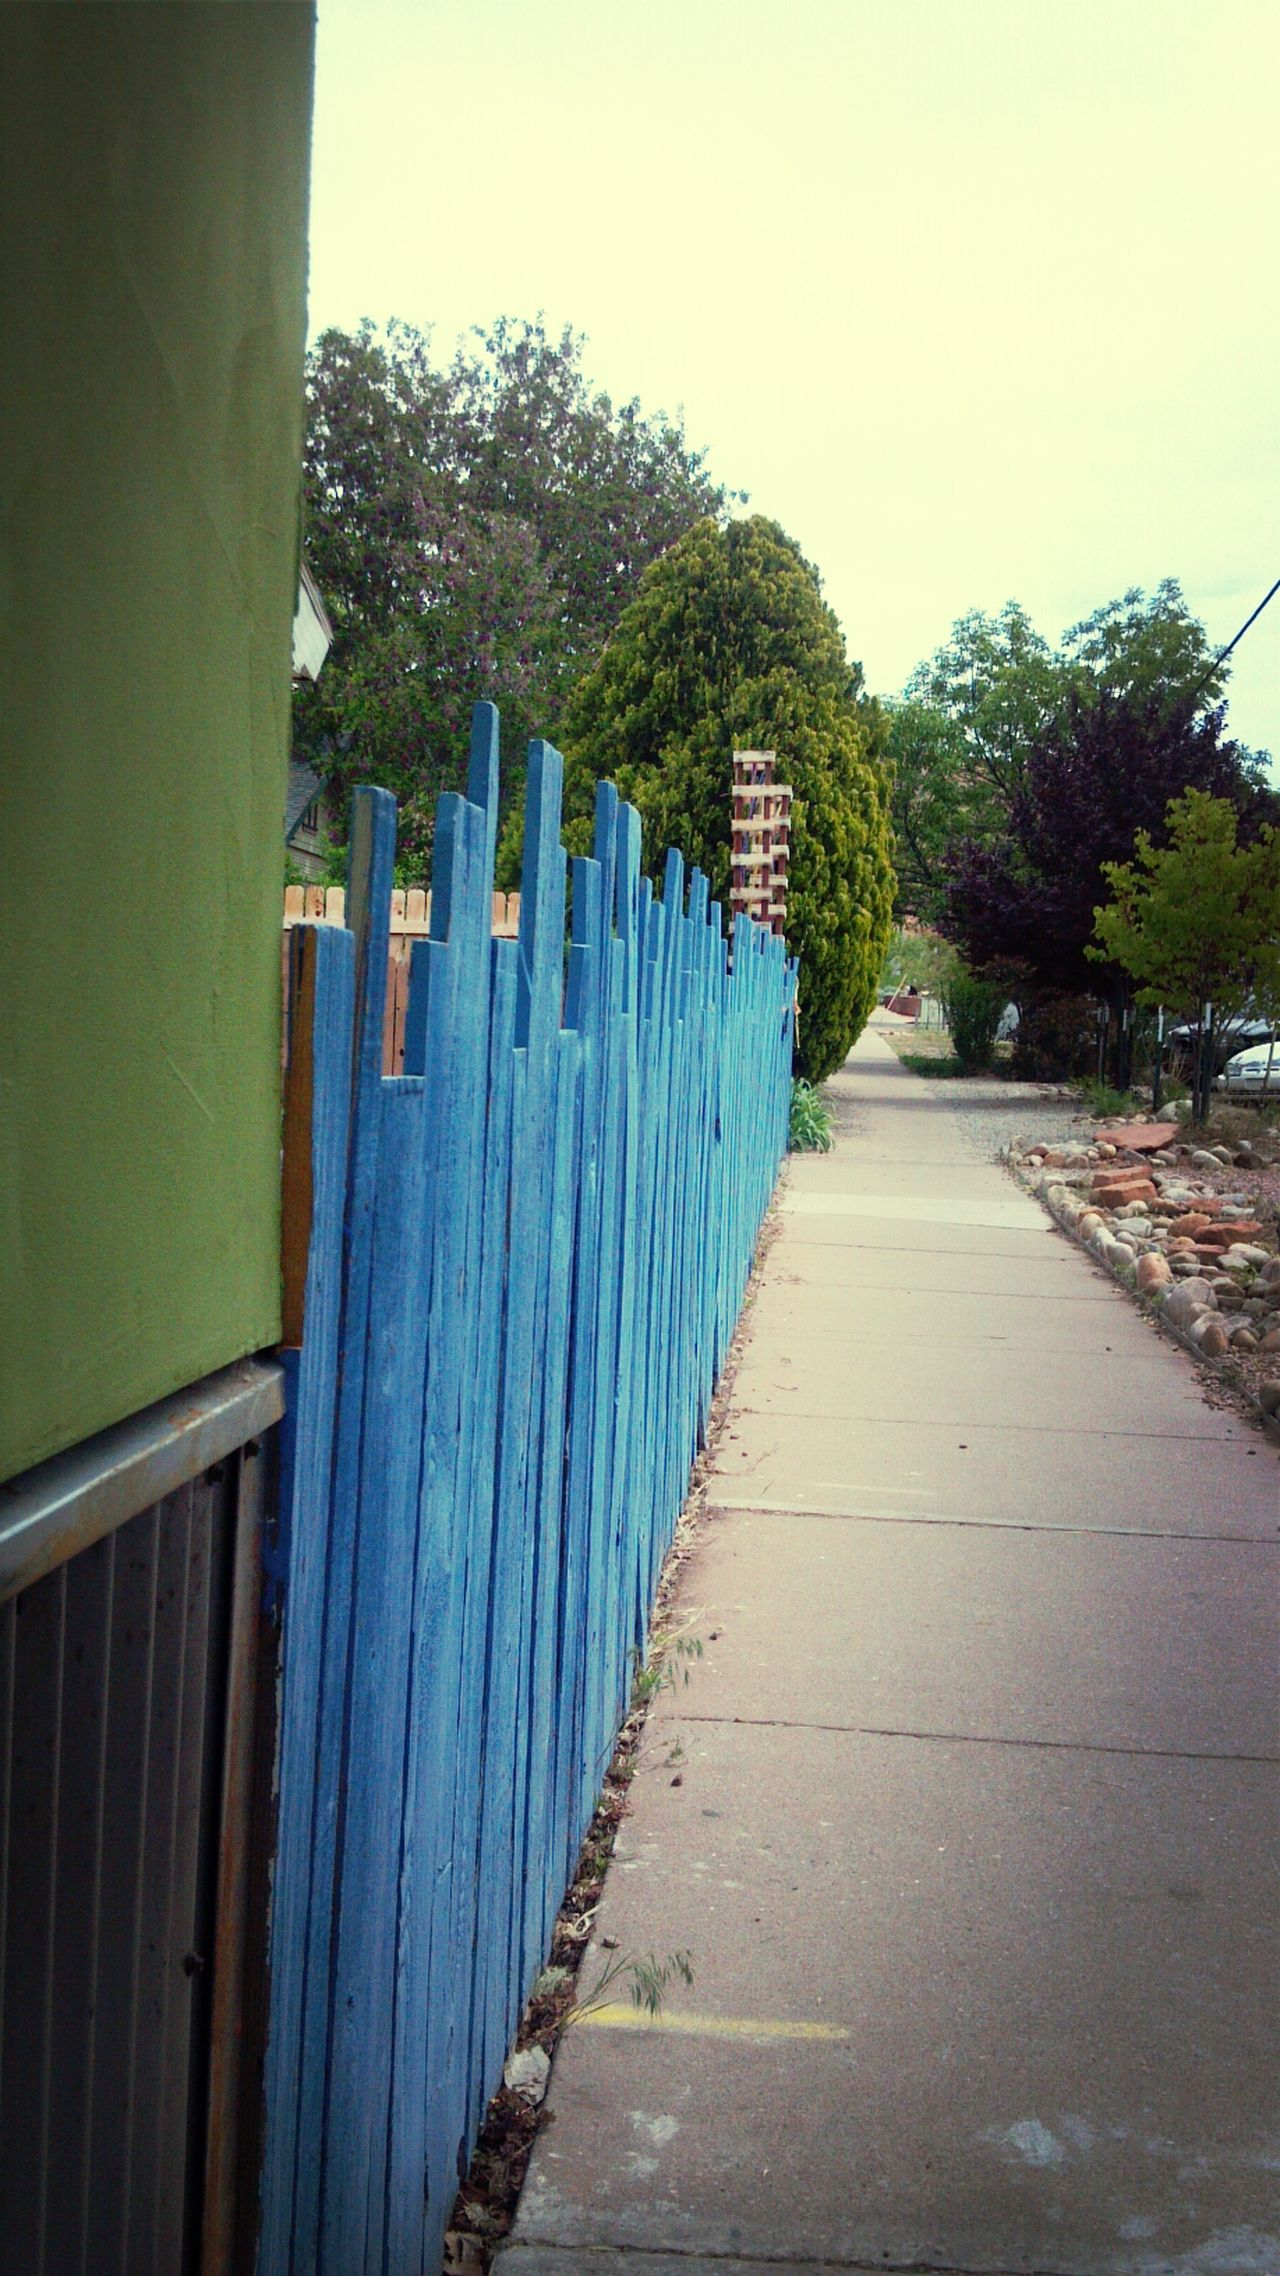 """Feeling Blue""...Boost filter... Eyeem Photography Day EyeEm EyeEm Team EyeEm Gallery Outdoors No People Eyeem Marketplace Eyeem Gallery Taking Photos. Boost Filter Green Color Blue Color Fence Art Contrasting Textures Contrasting Colors Nature Art Is Everywhere EyeEm The Best Shots EyeEmBestPics Perspective View Down The Line Down The Lane EyeEm Best Shots Down The Street Blue Fence"